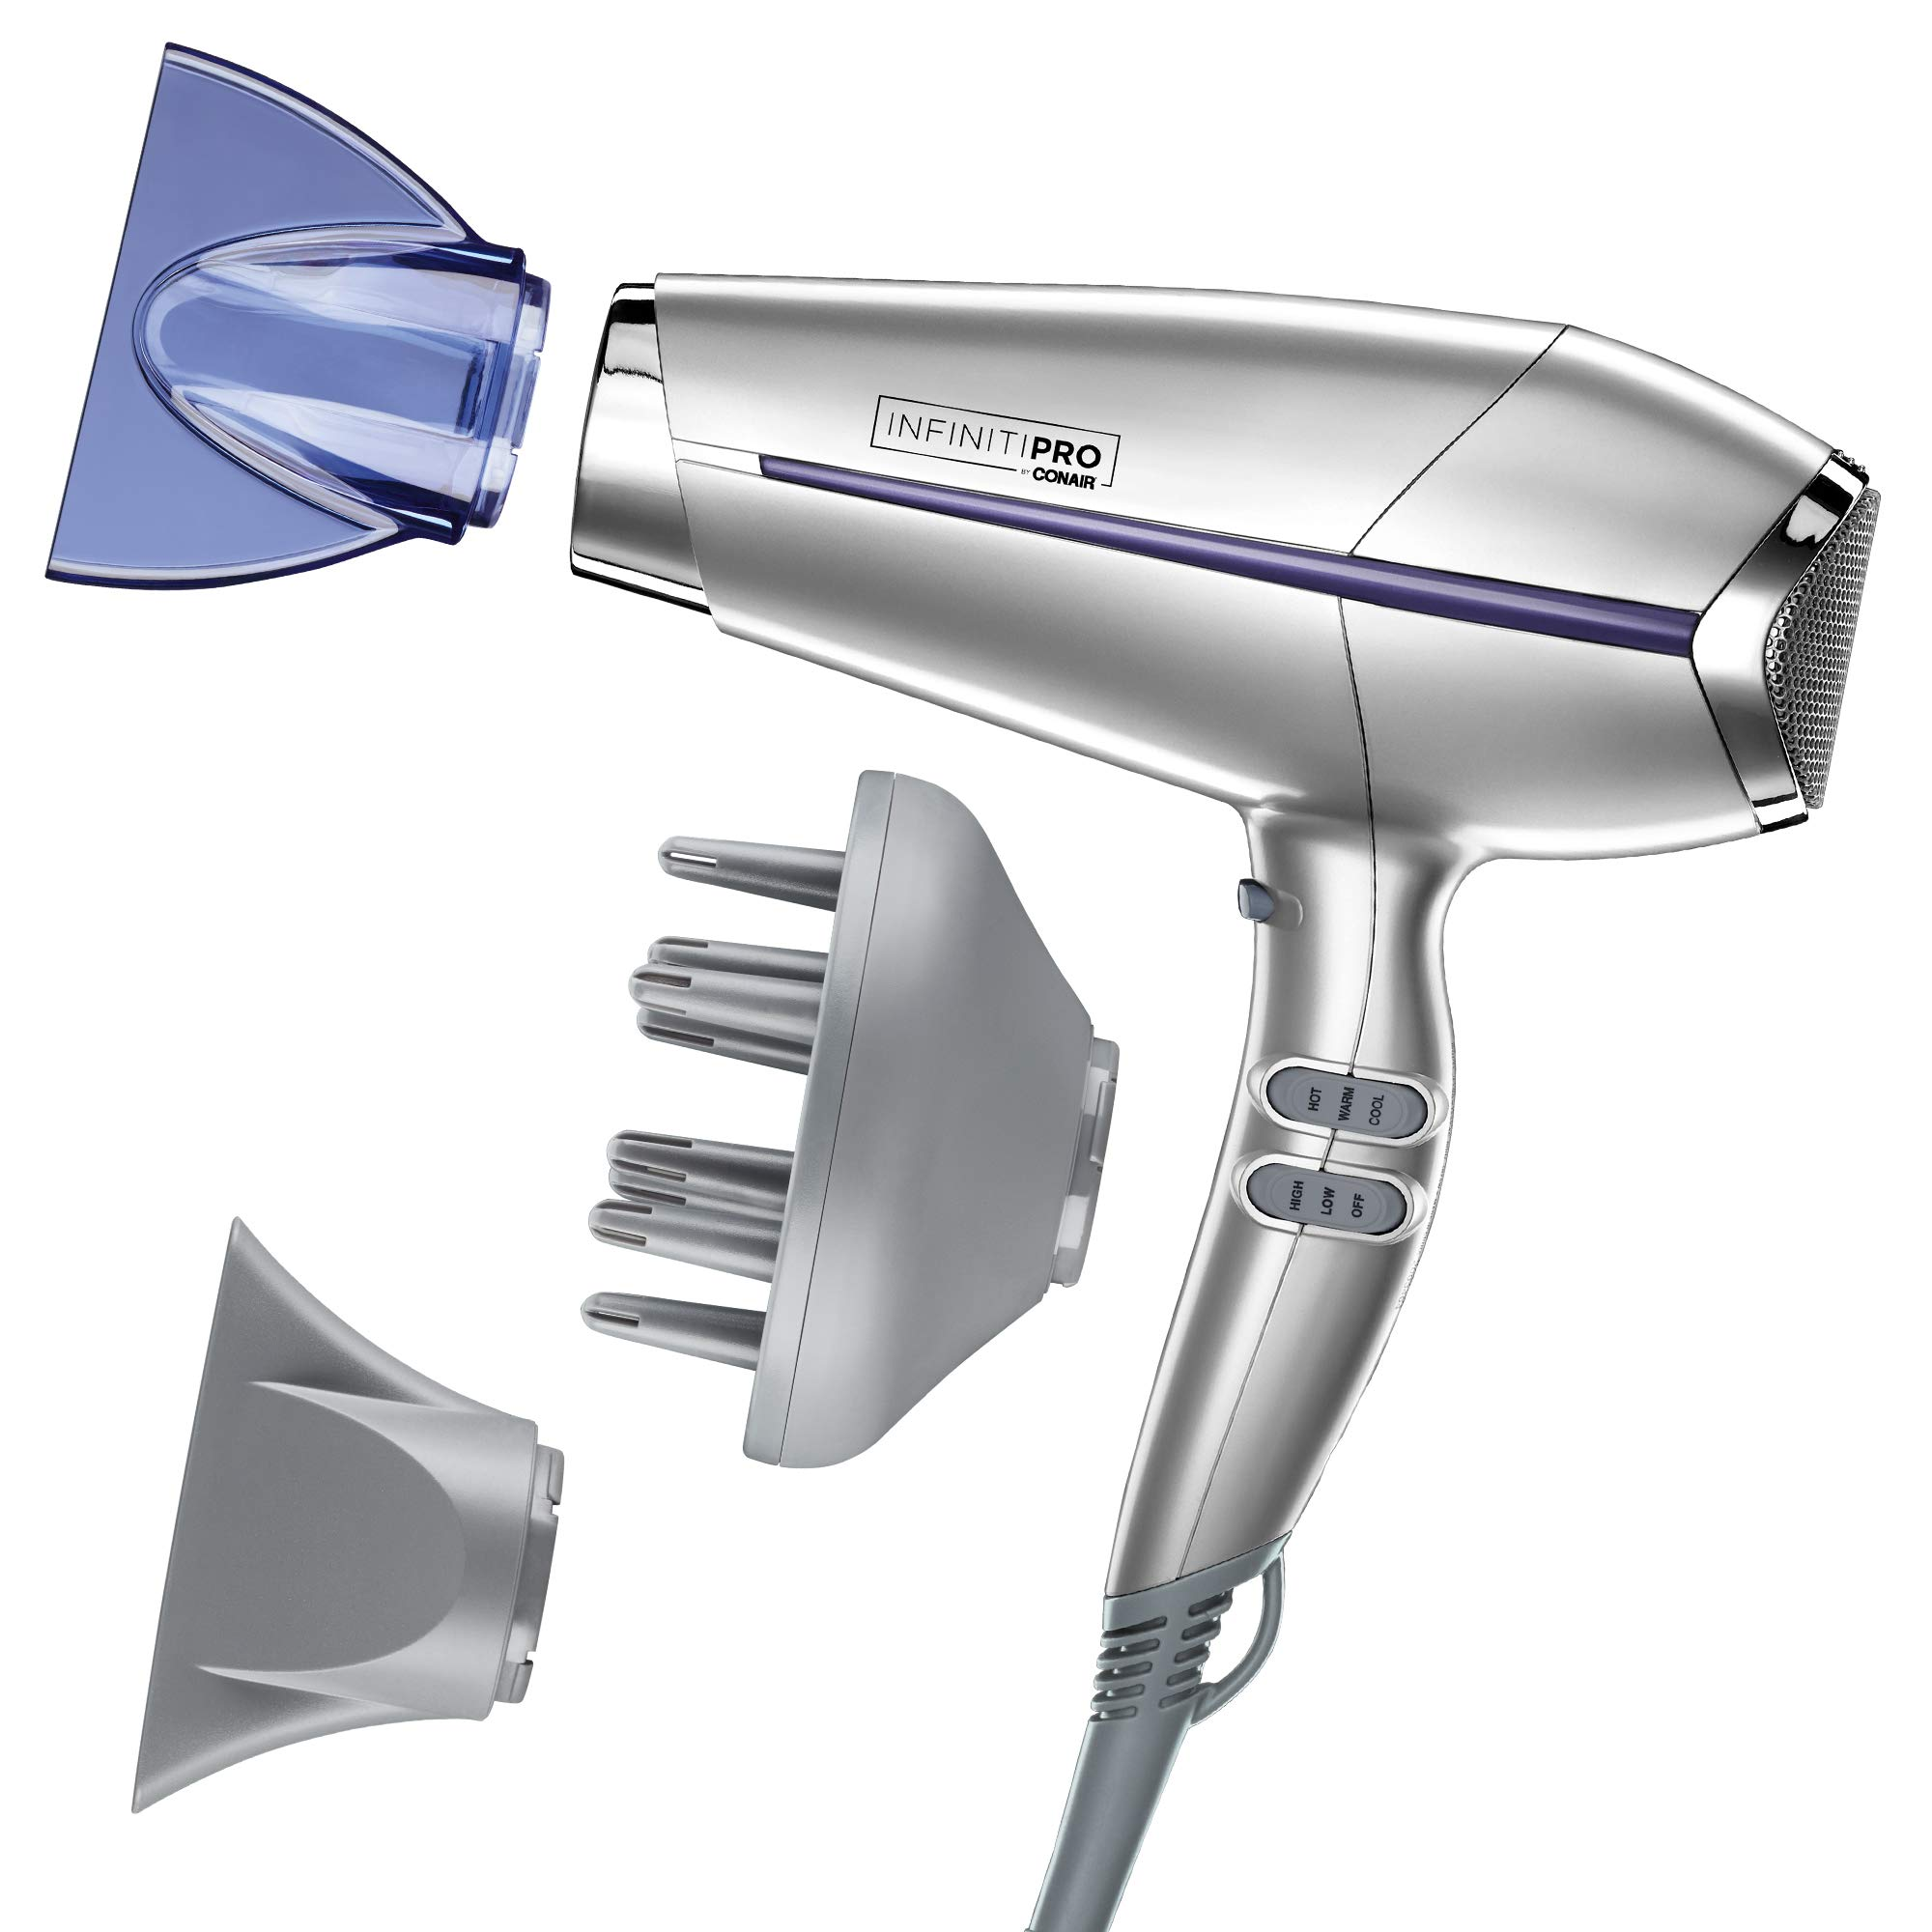 Conair INFINITIPRO BY CONAIR Pro Performance Frizz Free Hair Dryer, Silver